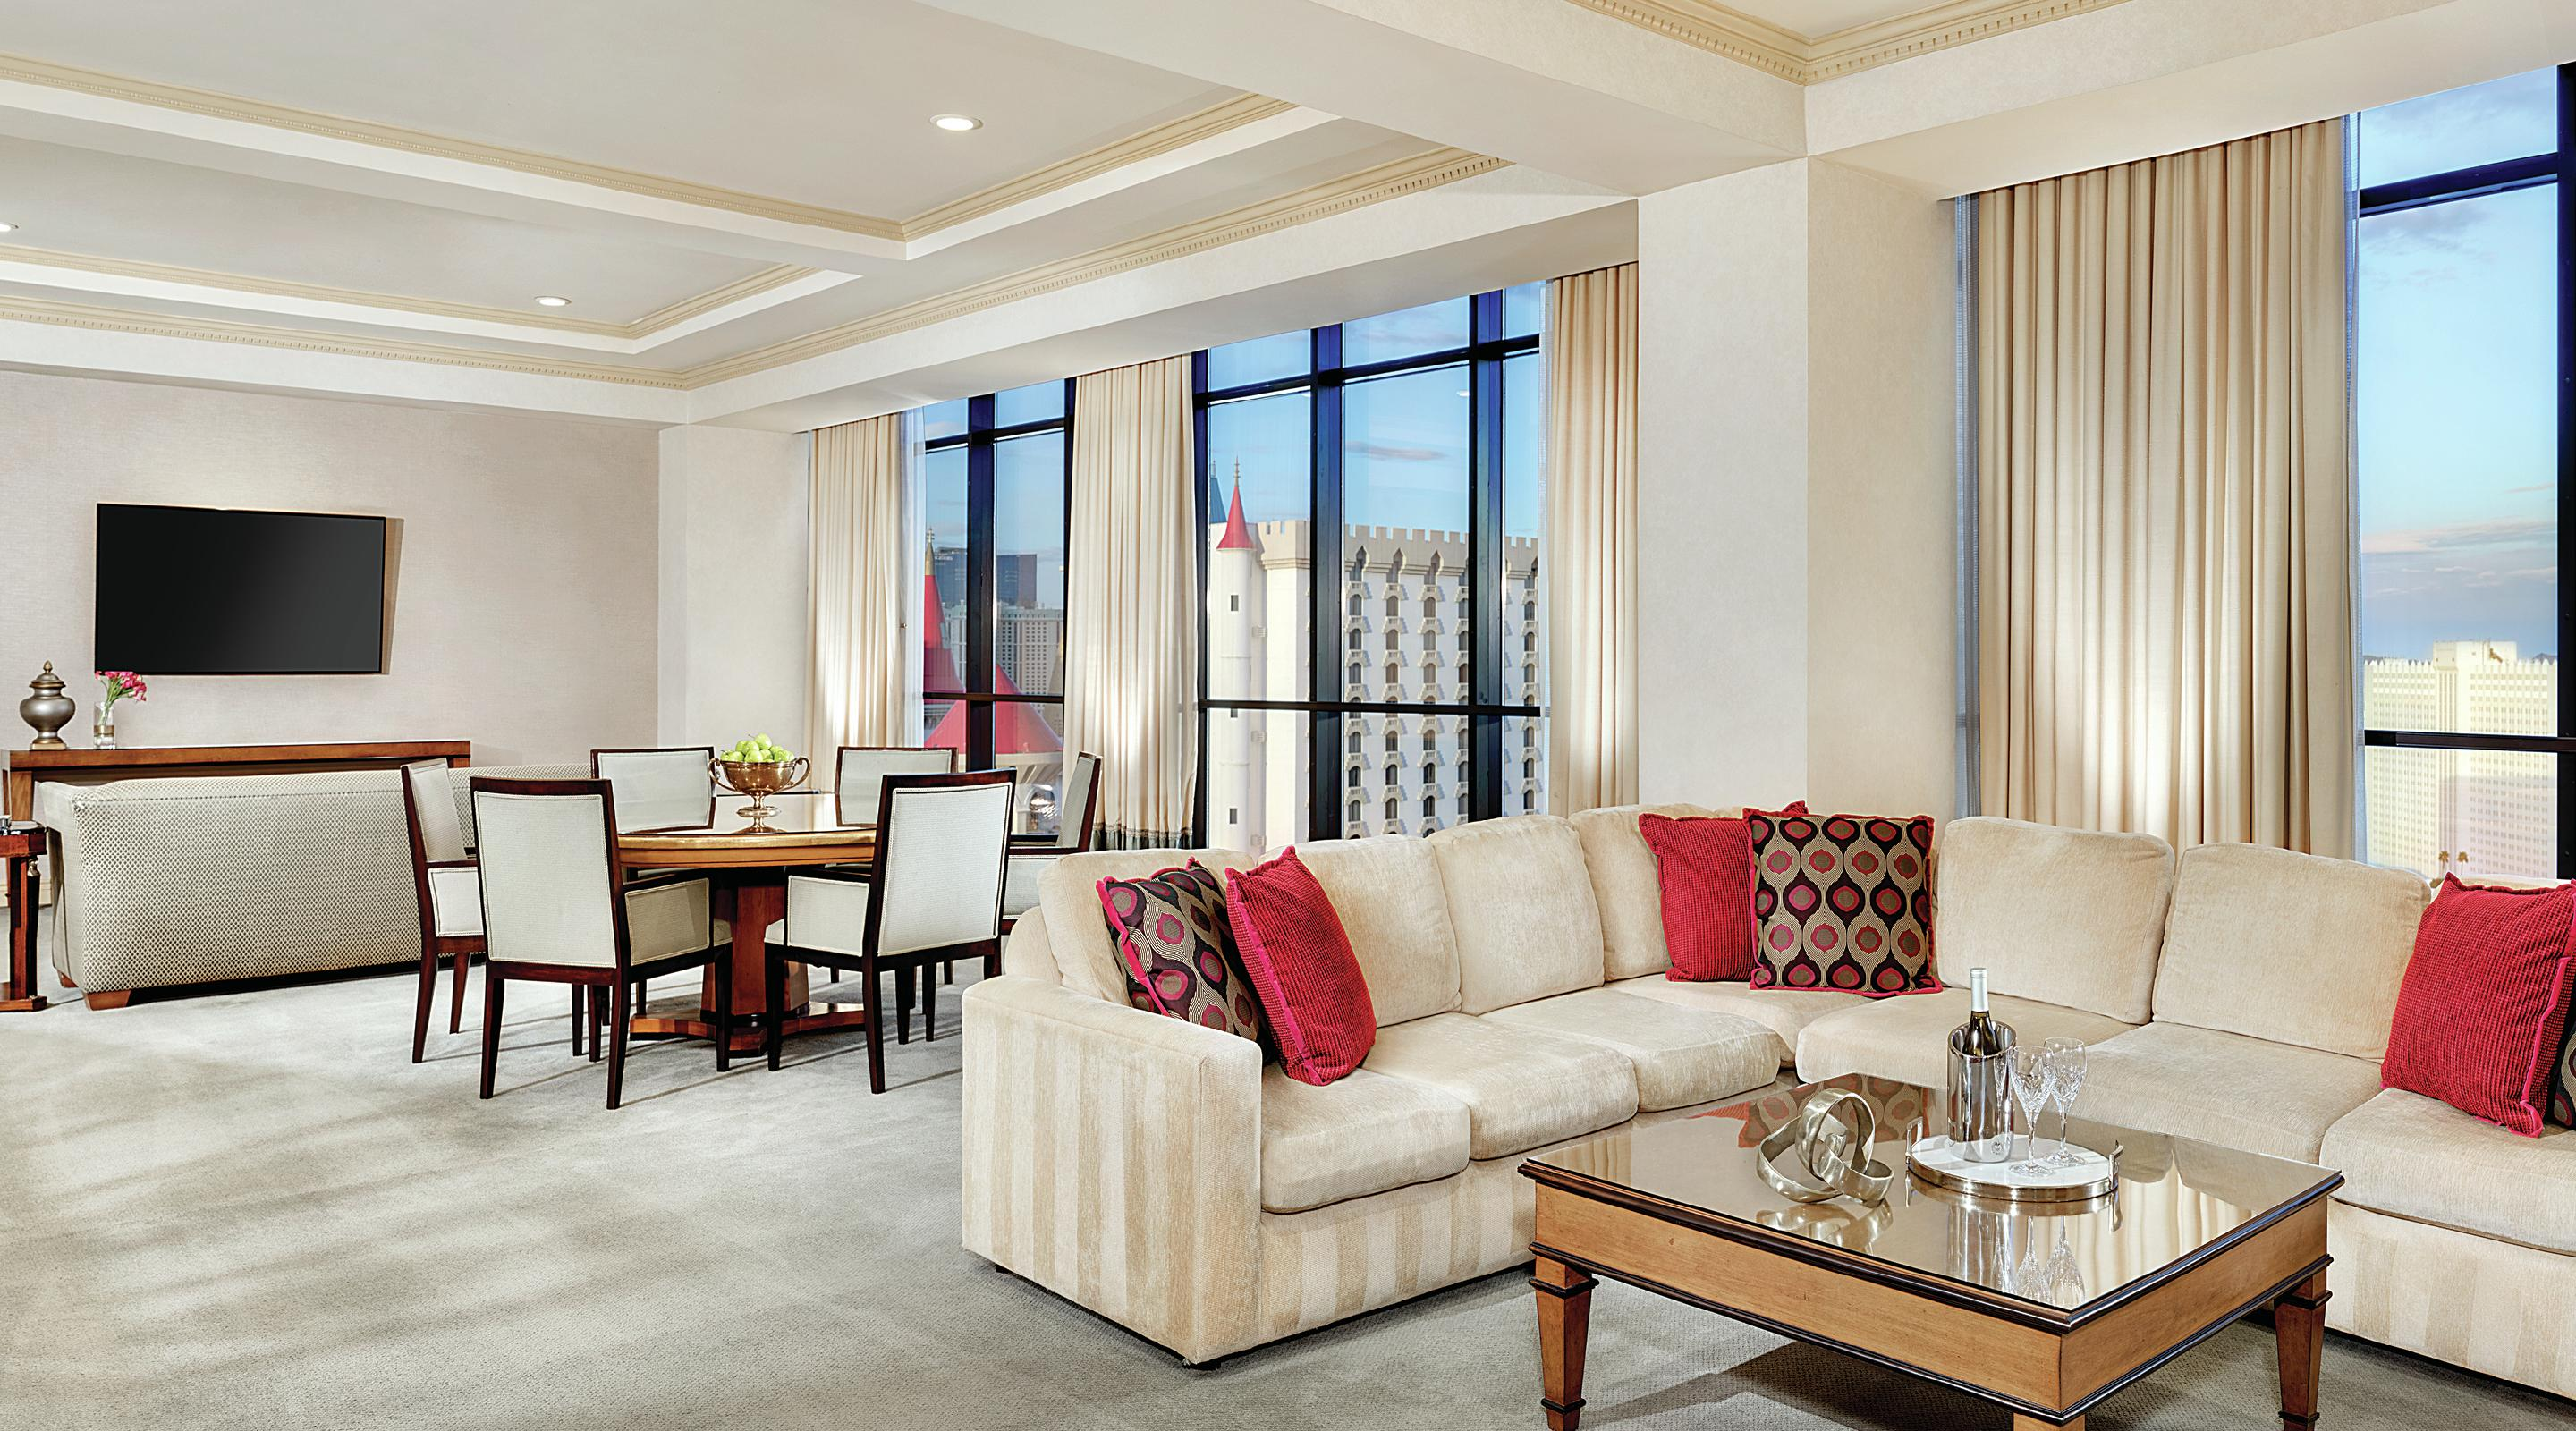 Living room of a Two Bedroom Penthouse Suite.